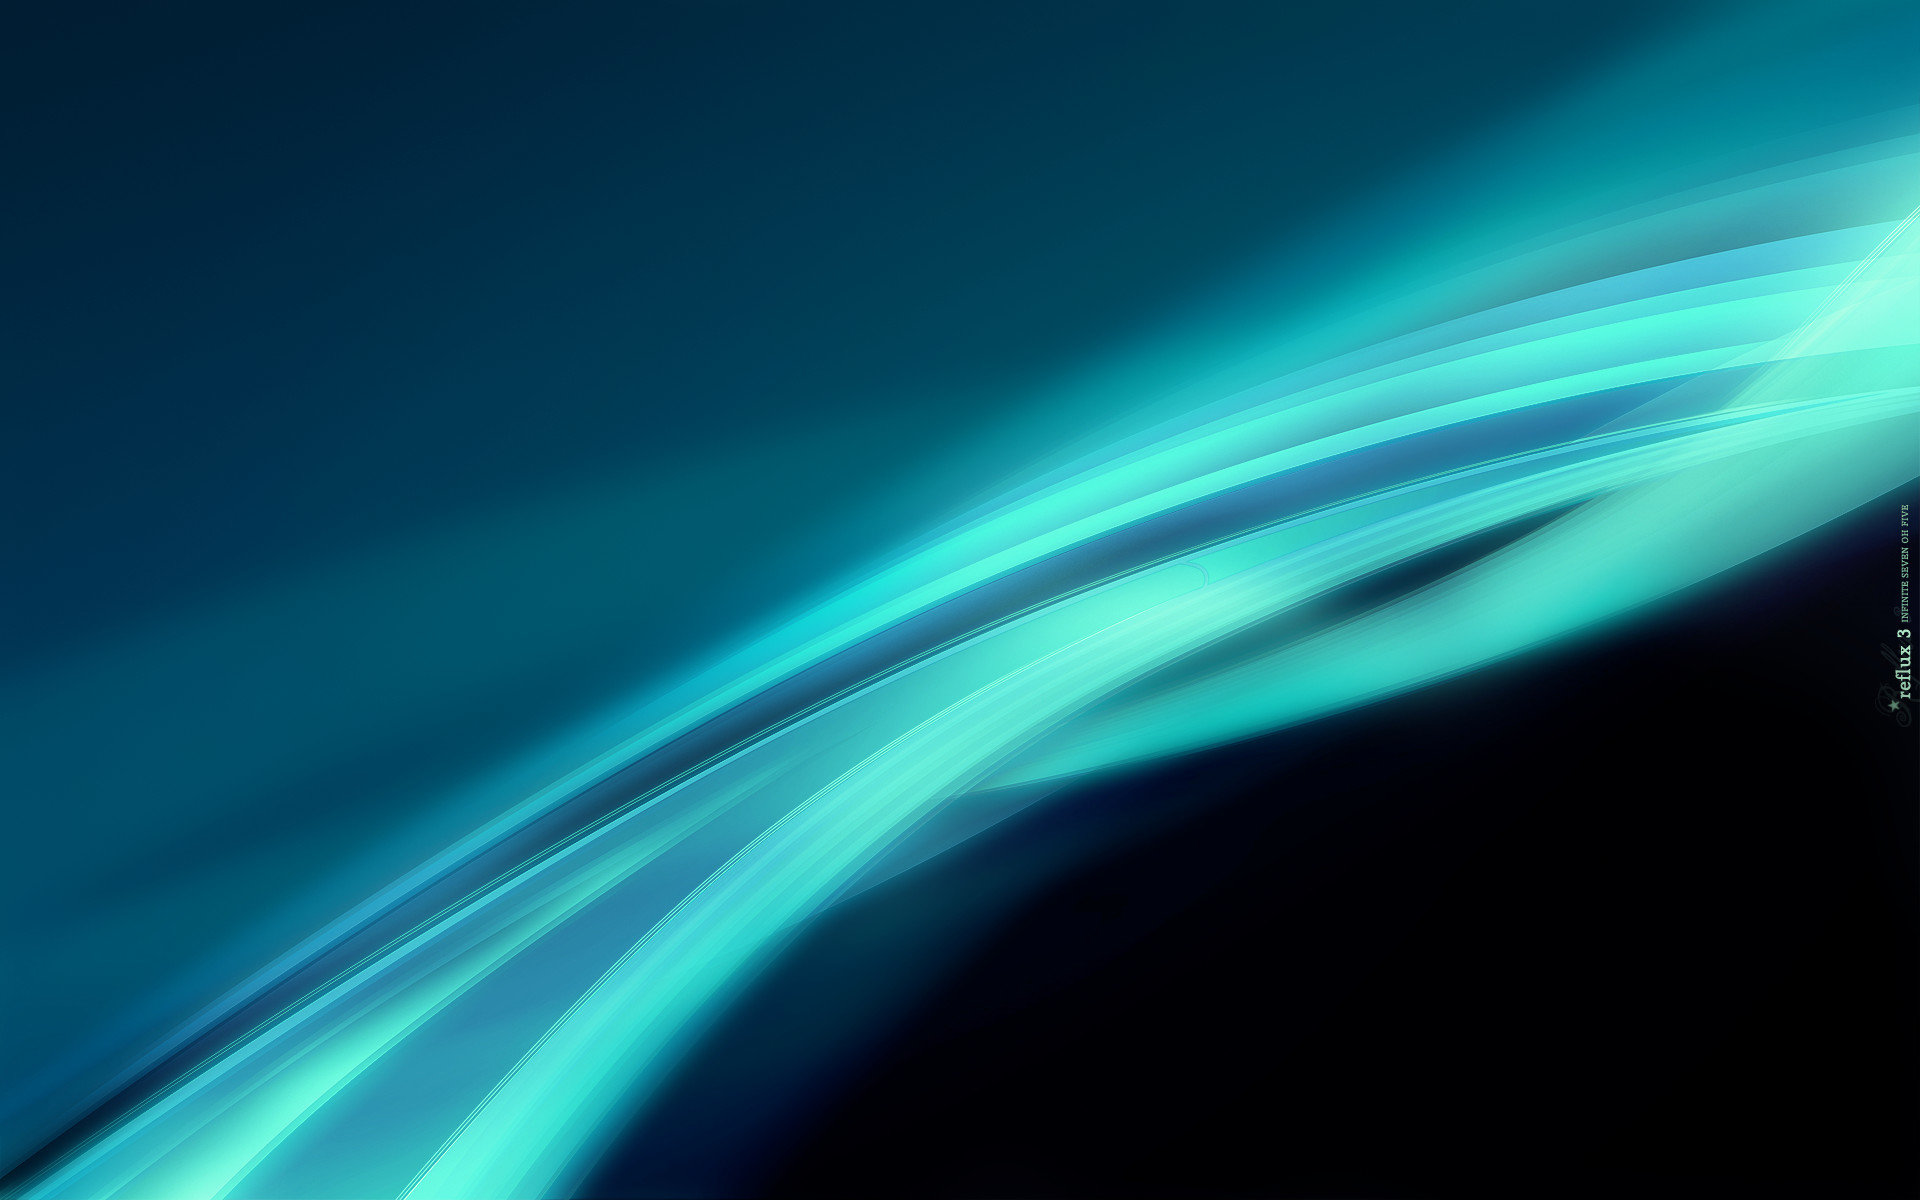 Free Turquoise high quality wallpaper ID:298474 for hd 1920x1200 desktop